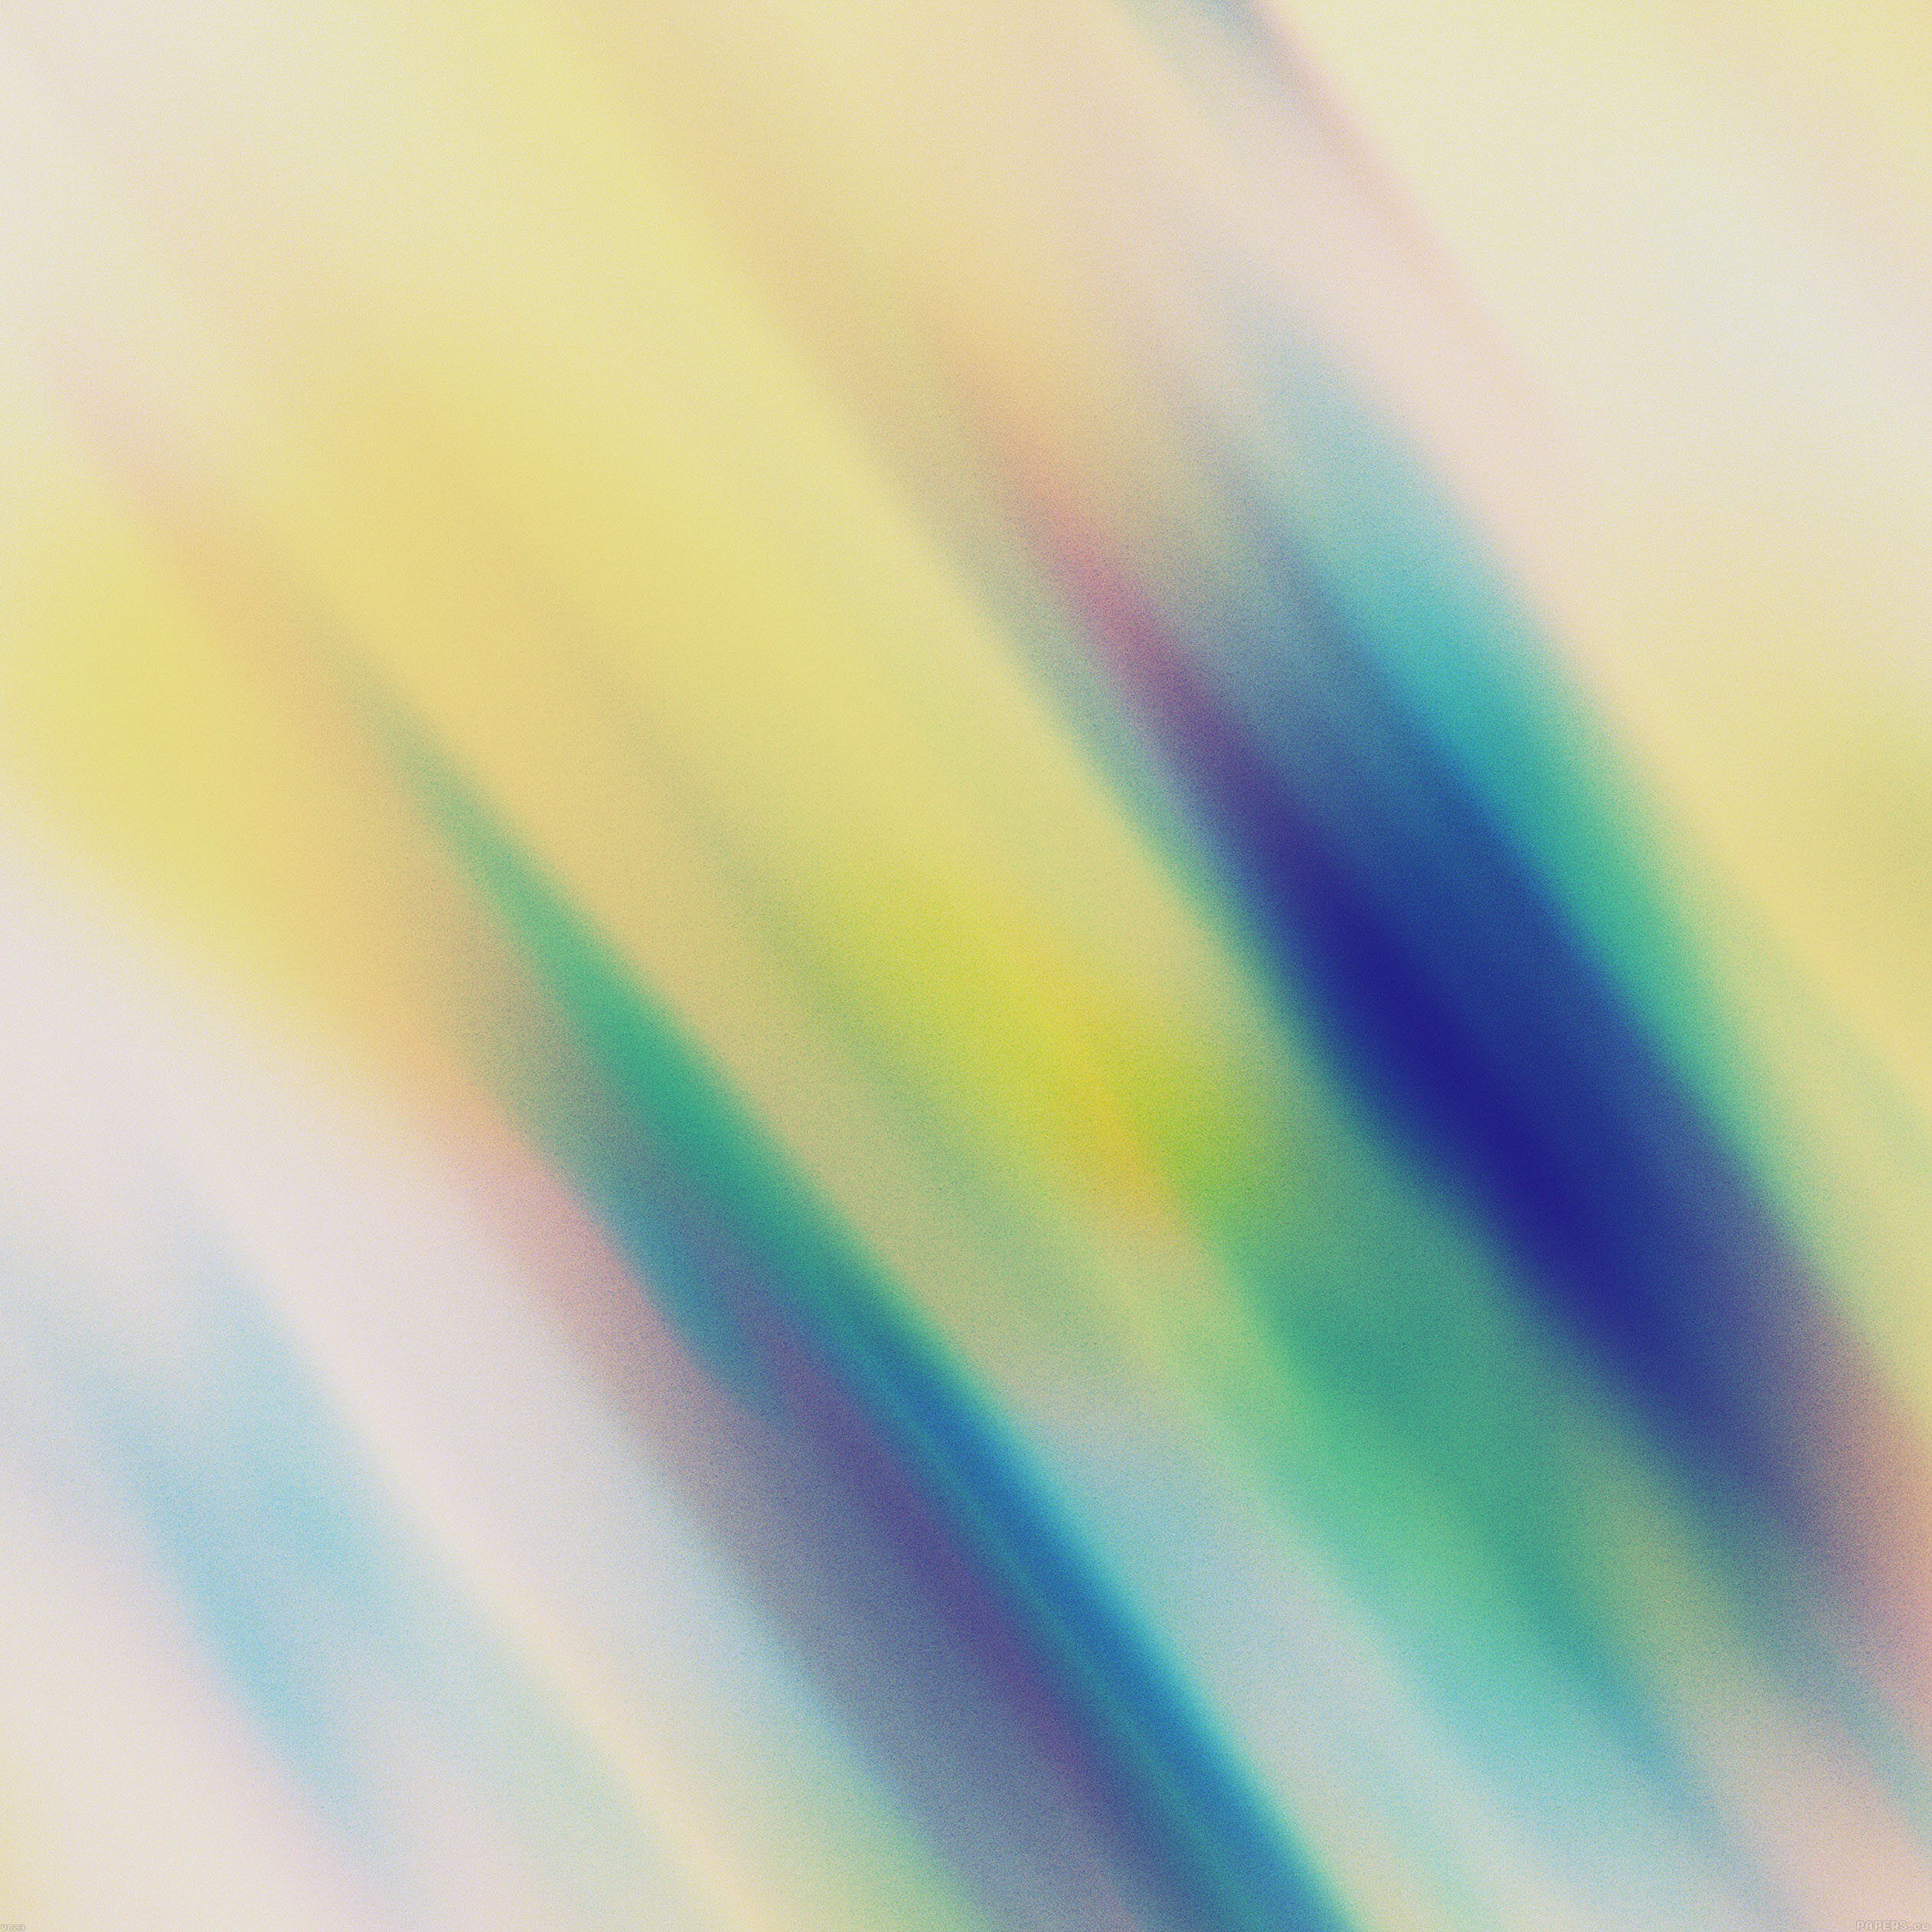 Wallpaper Iphone Pastel Whimsical Colors For Iphone And Ipad